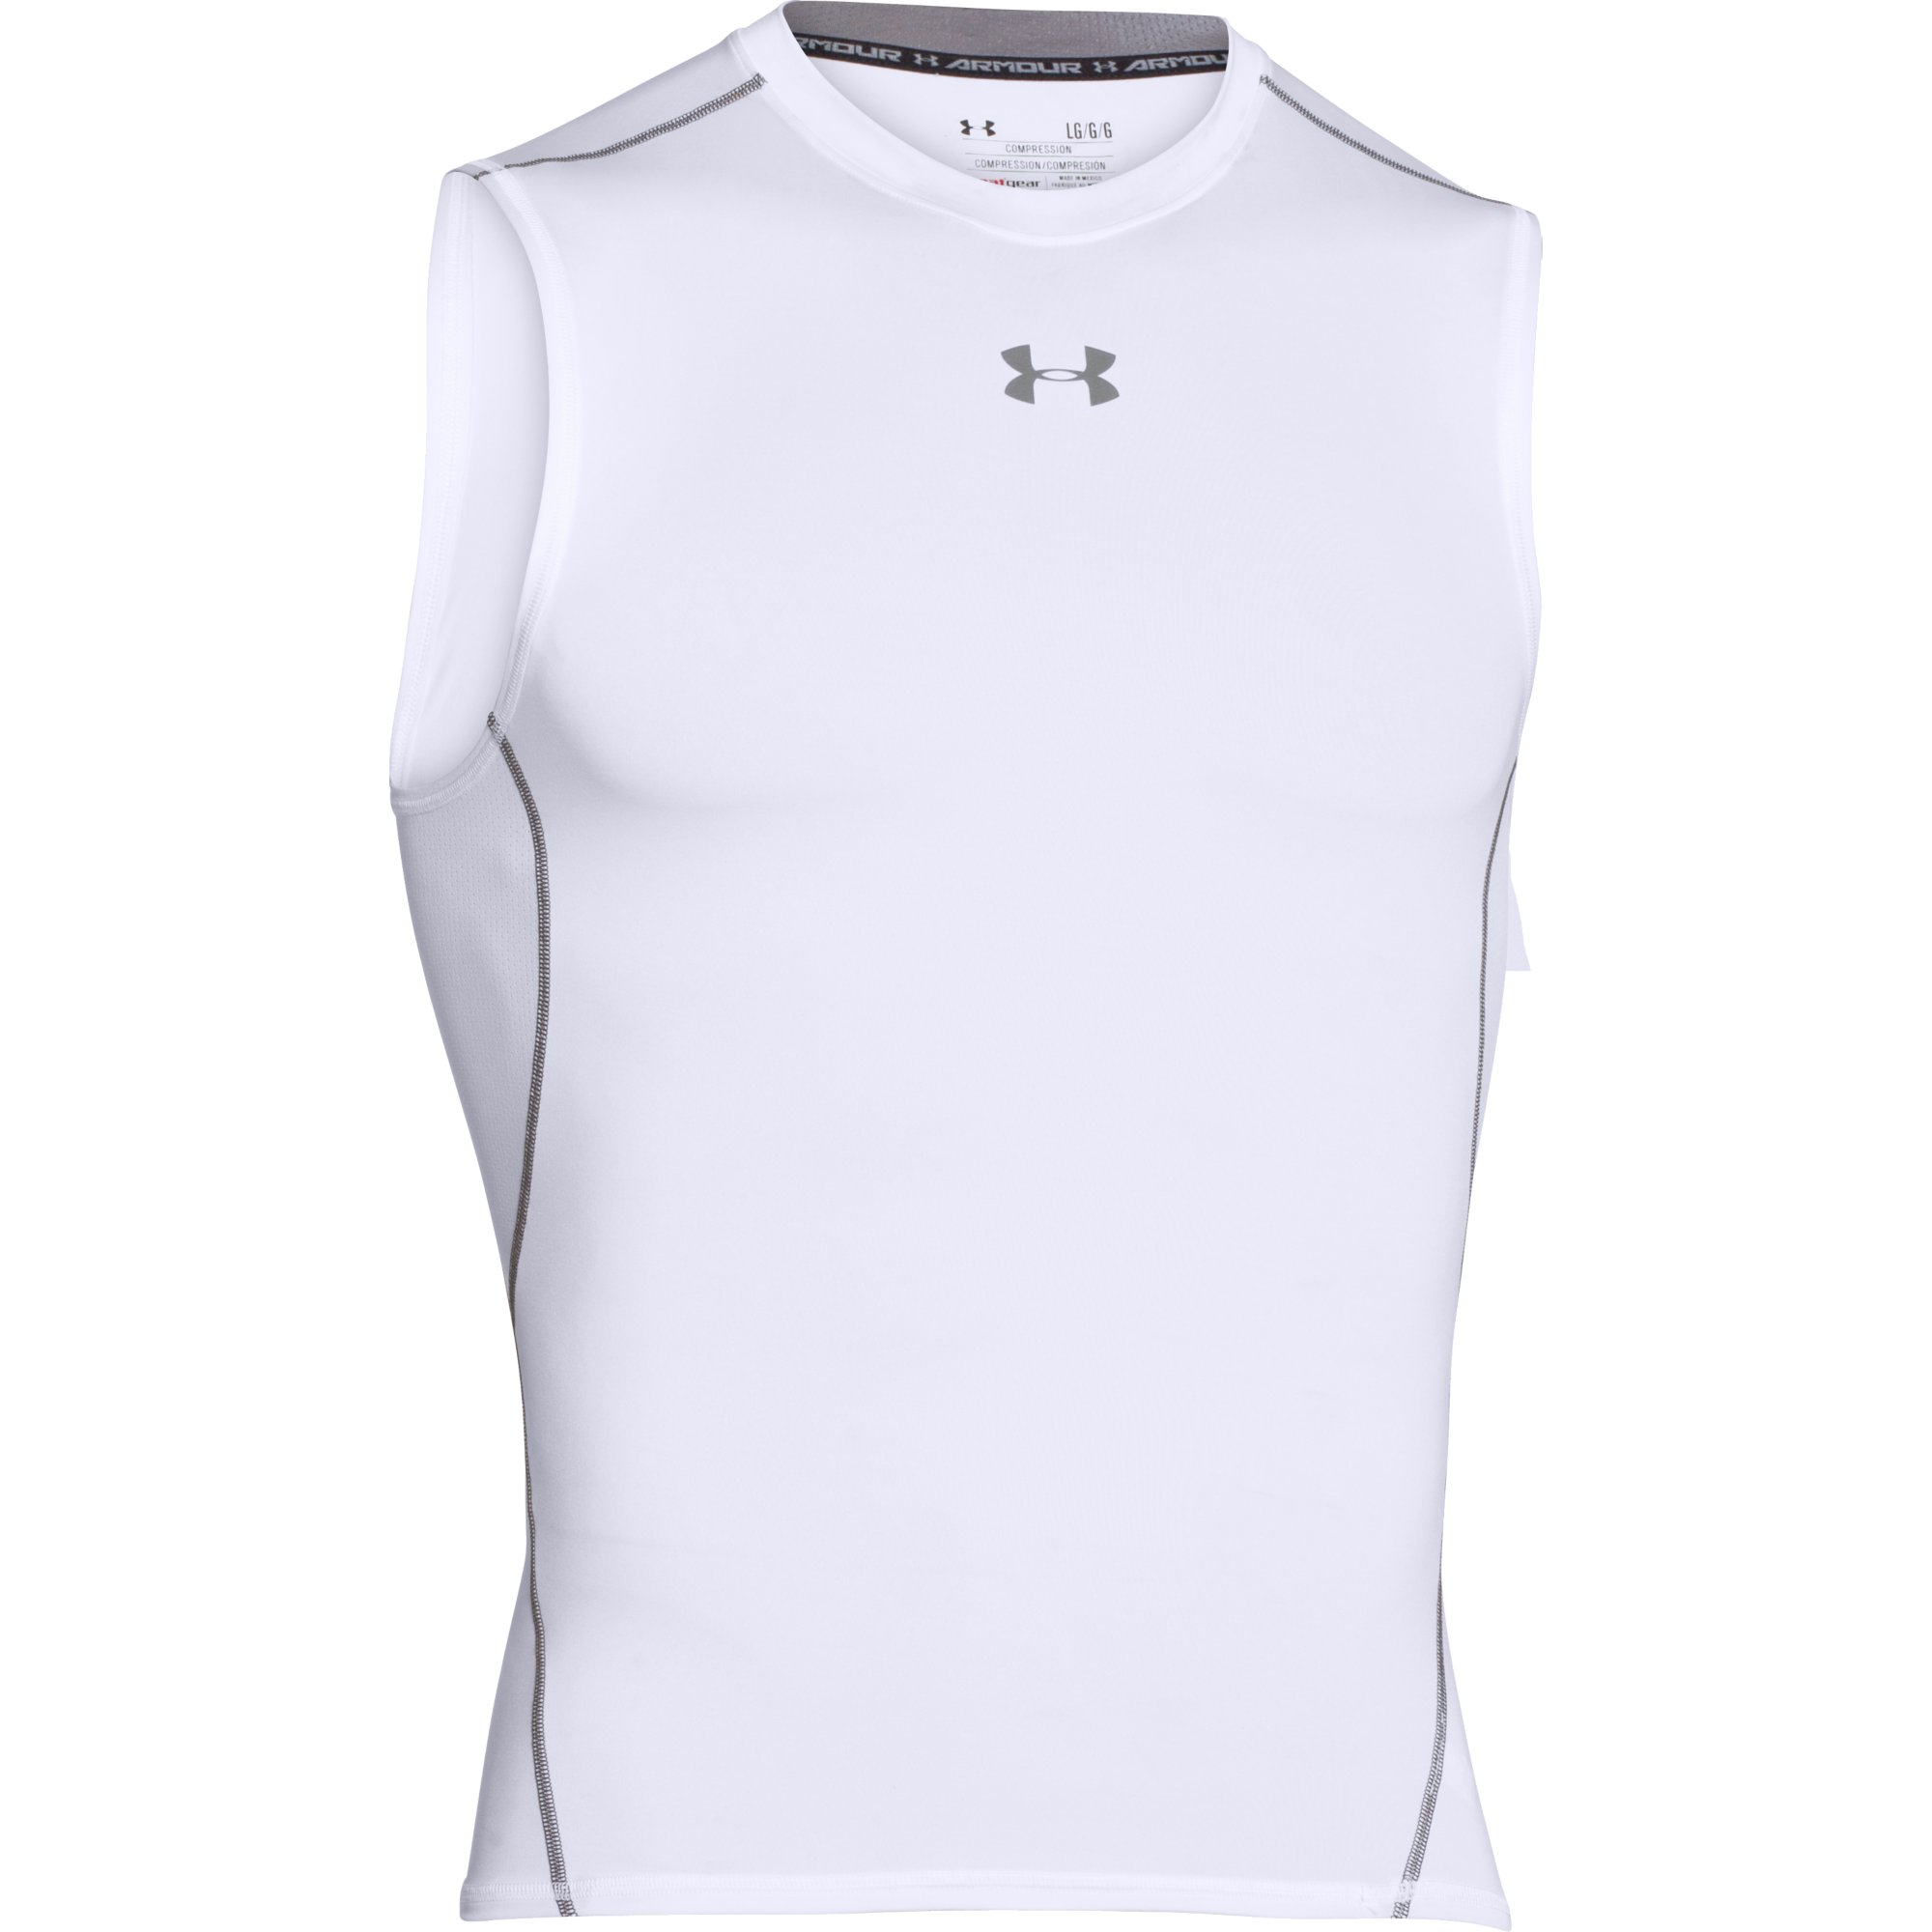 Ricordo particella da qualche parte  wiggle.com | Under Armour Heatgear Armor Sleeveless Compression Tee |  Compression Tops